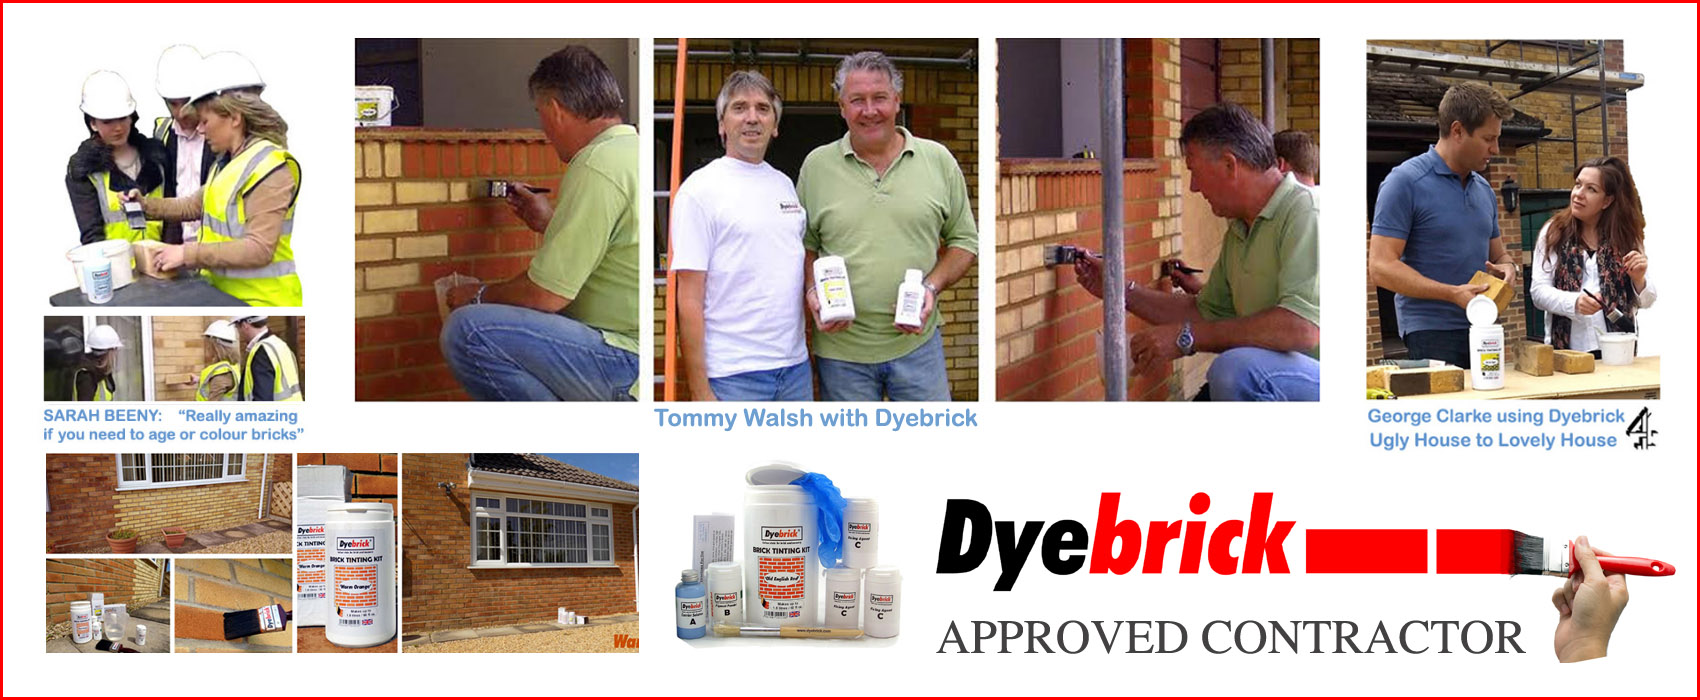 Dyebrick Approved Contractor